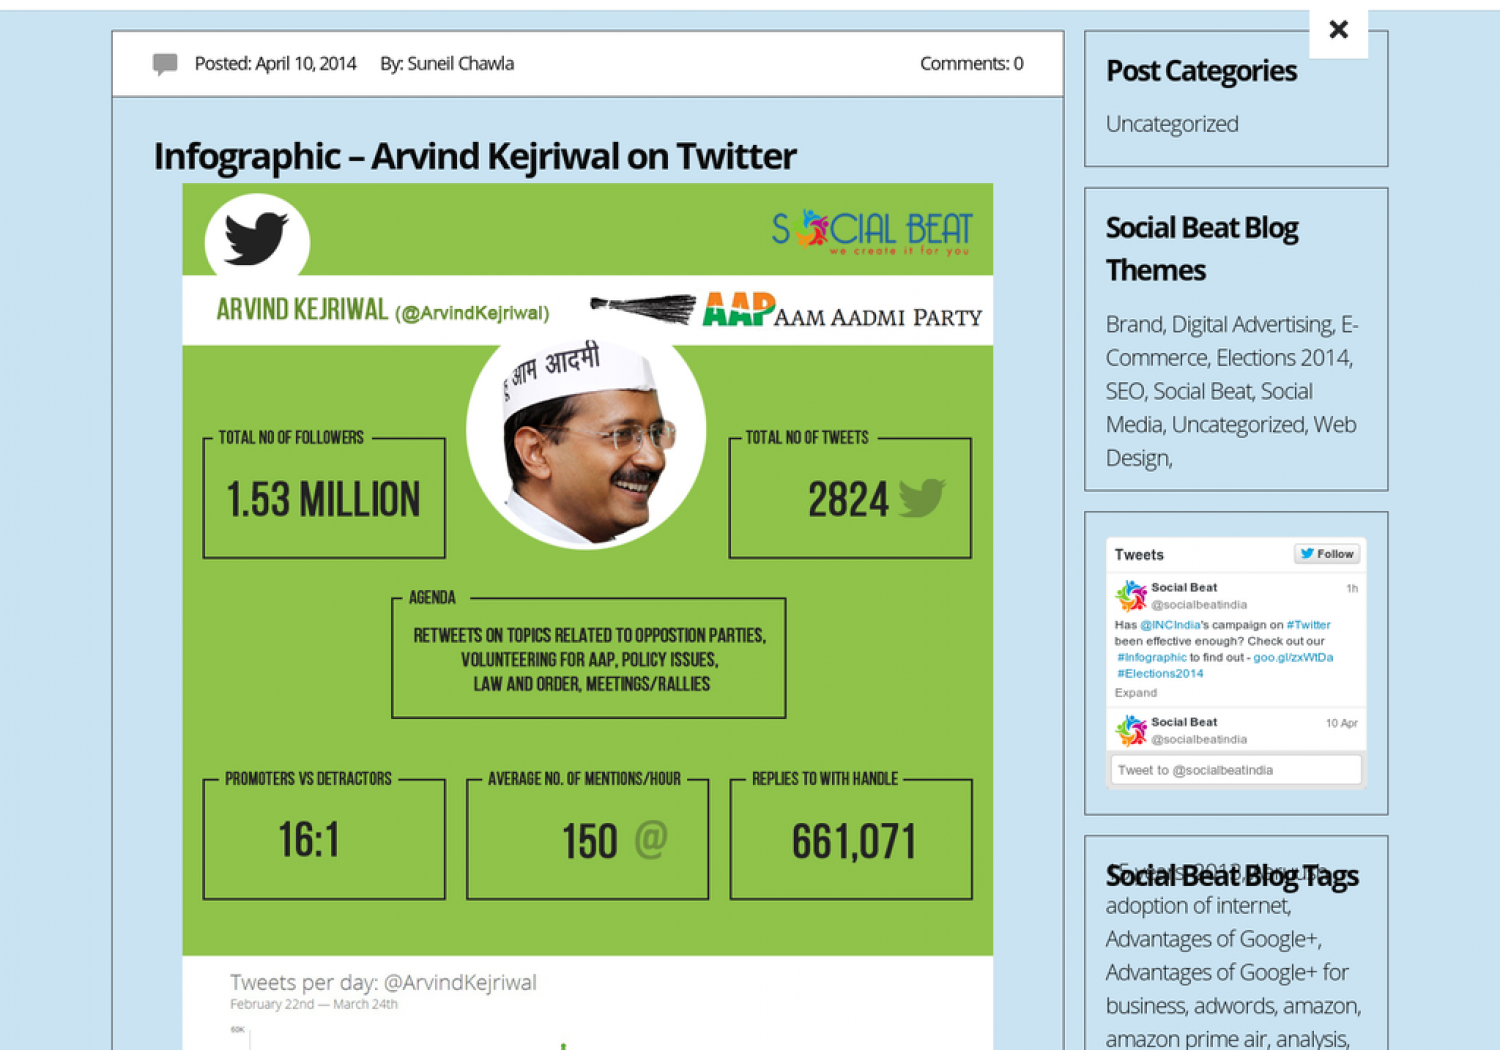 Arvind Kejriwal on Twitter Infographic